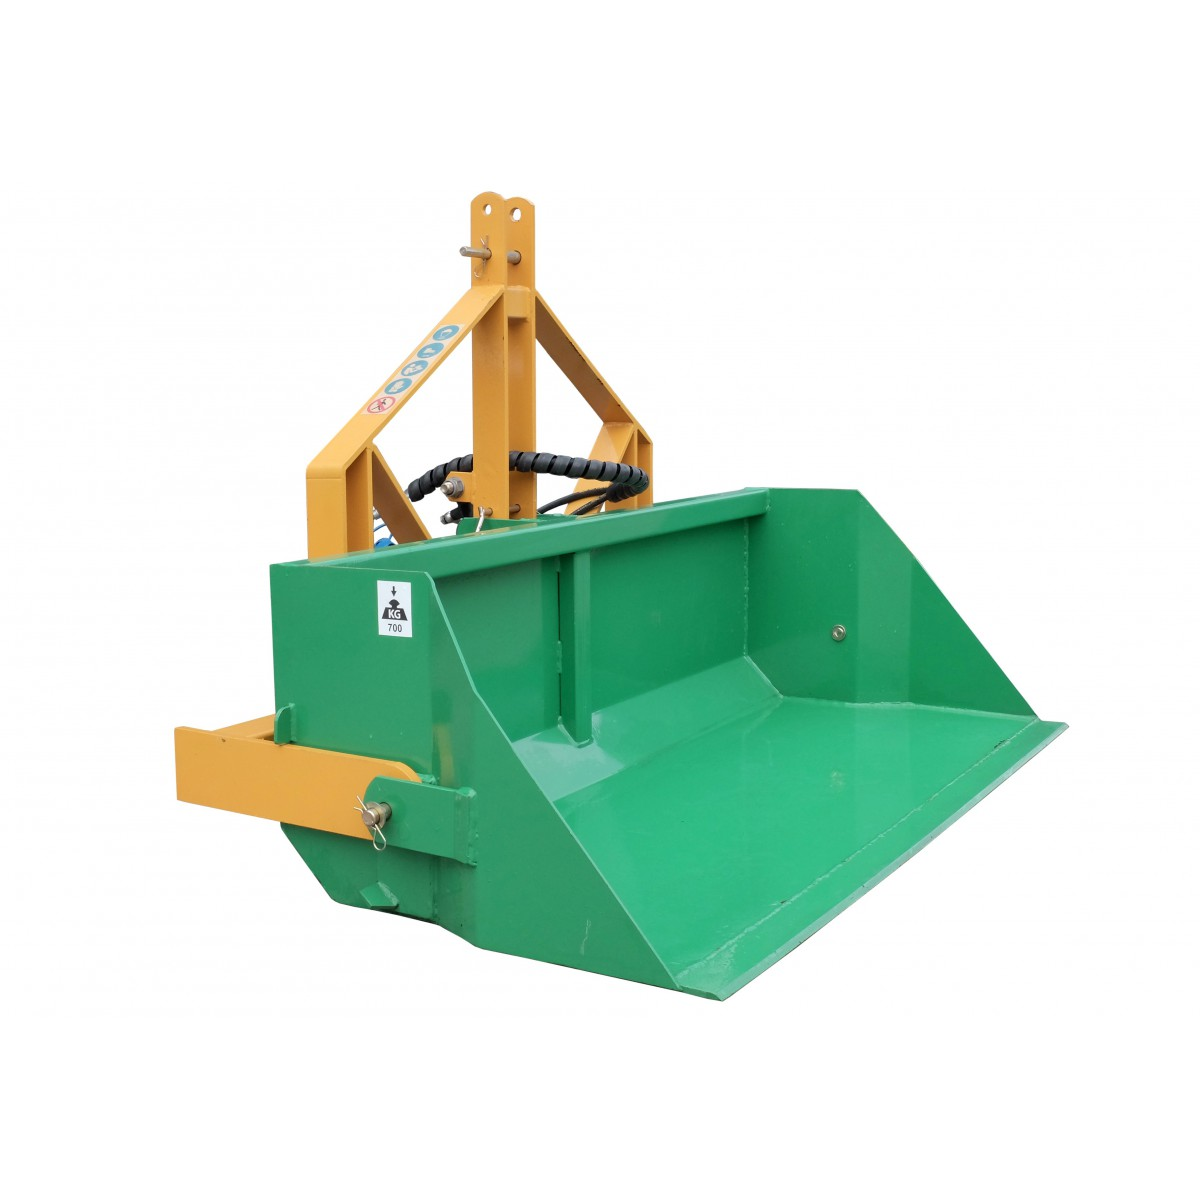 180 cm transport box with a hydraulic tipper, capacity 700 kg